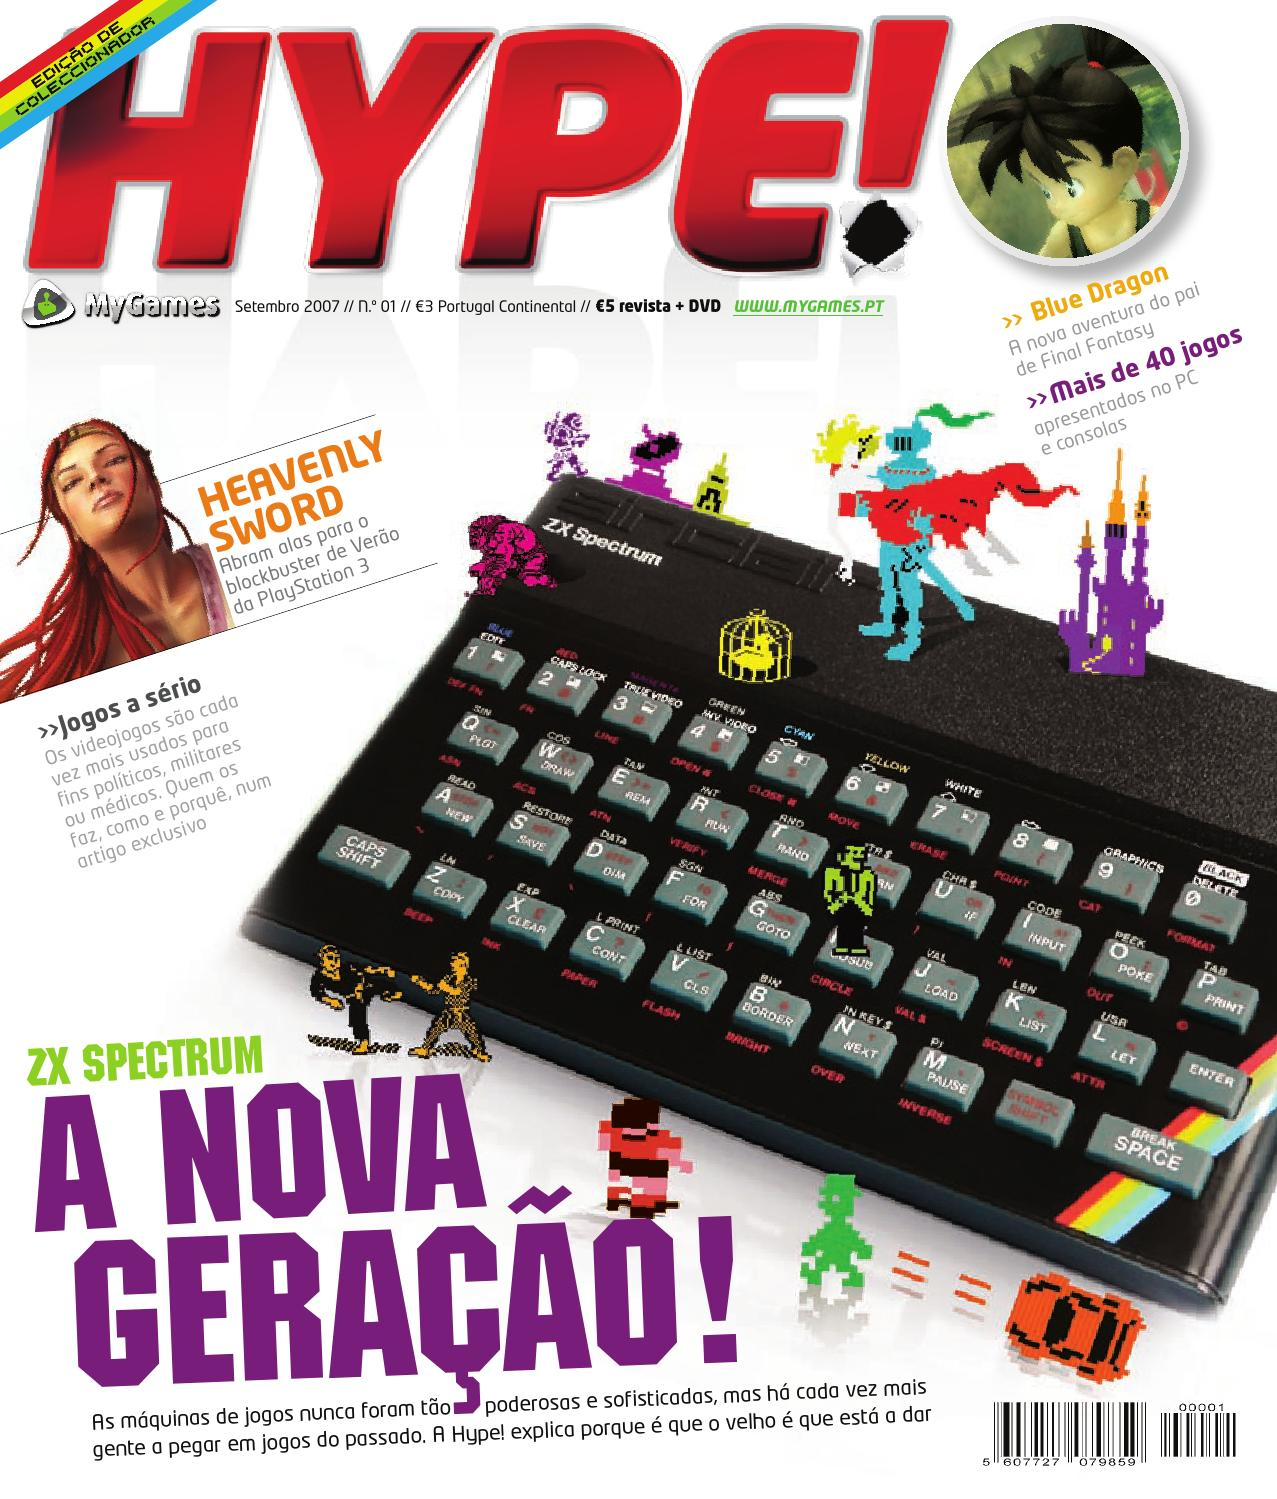 Hype! 01 by Gonçalo Brito - issuu 49f170f5c4